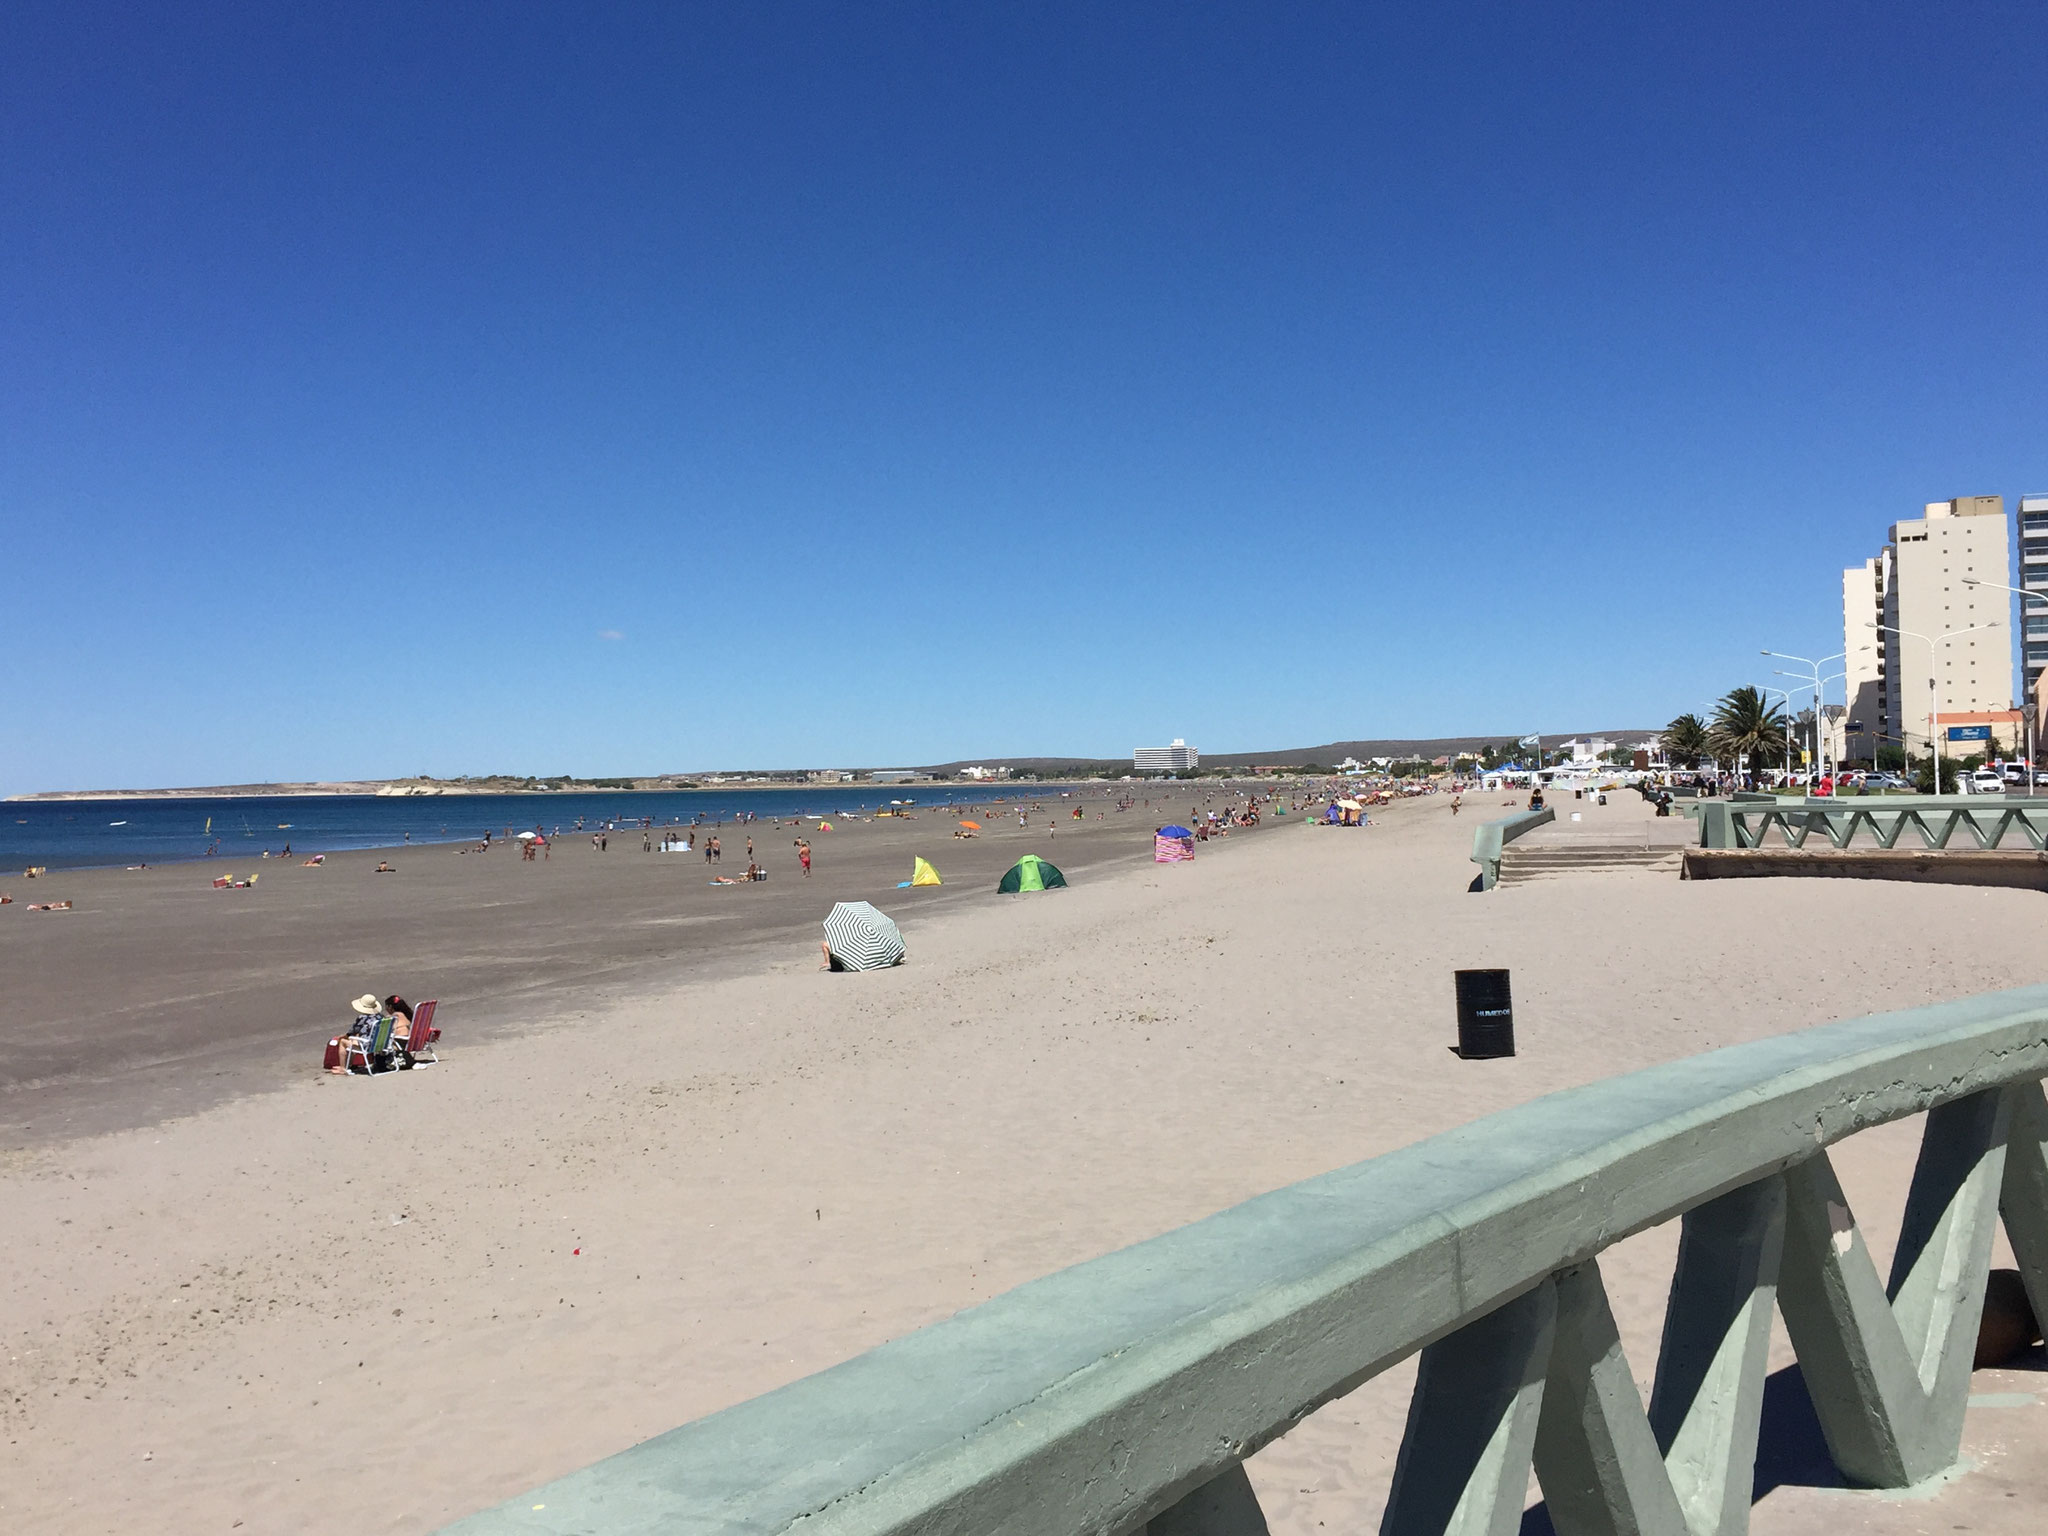 Strand in Puerto Madryn